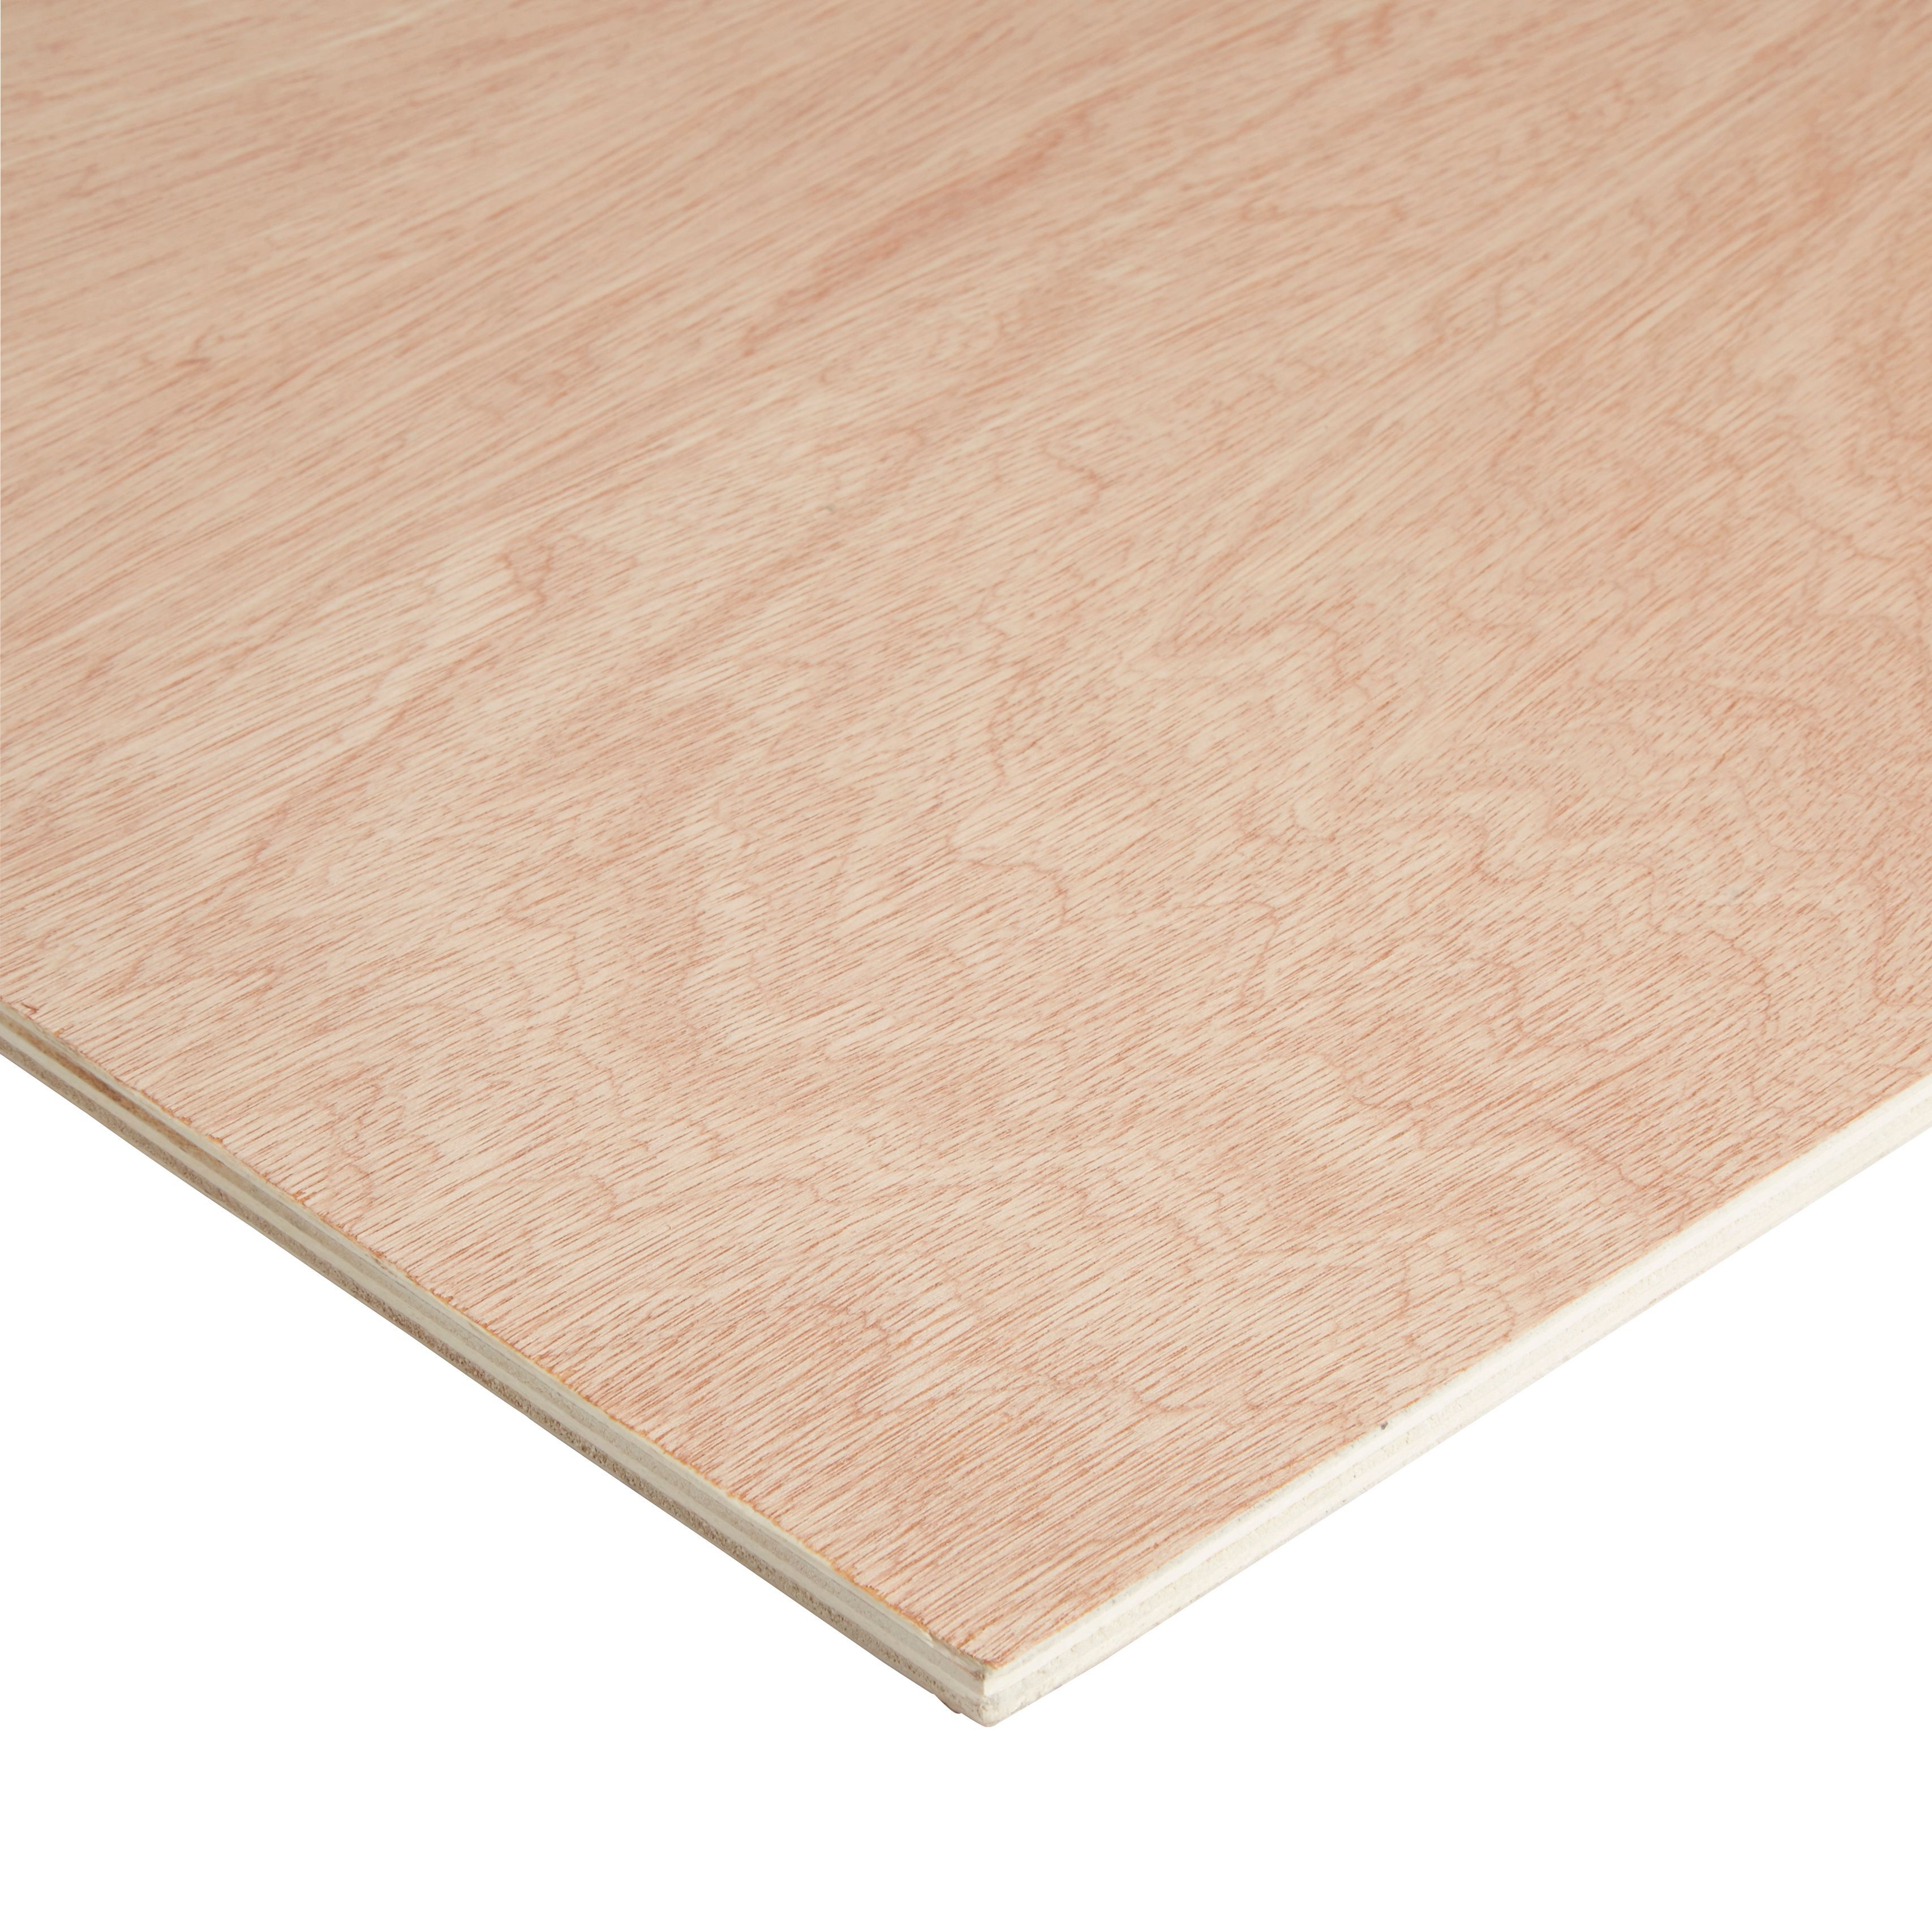 9 Mm Plywood ~ Plywood sheet th mm w l departments